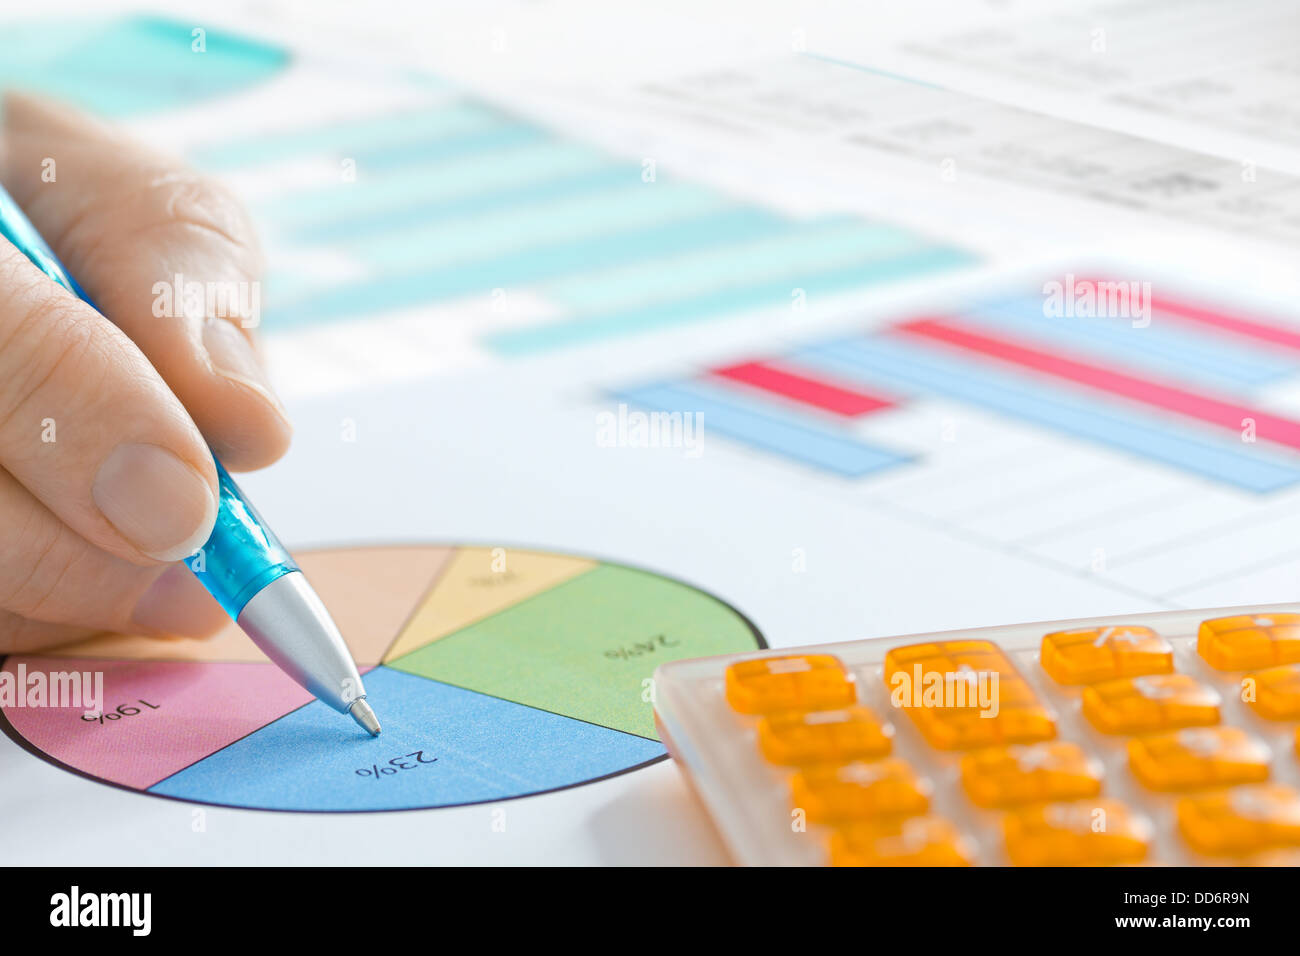 Hand with  Pen and Calculator Analyzing Piechart - Stock Image